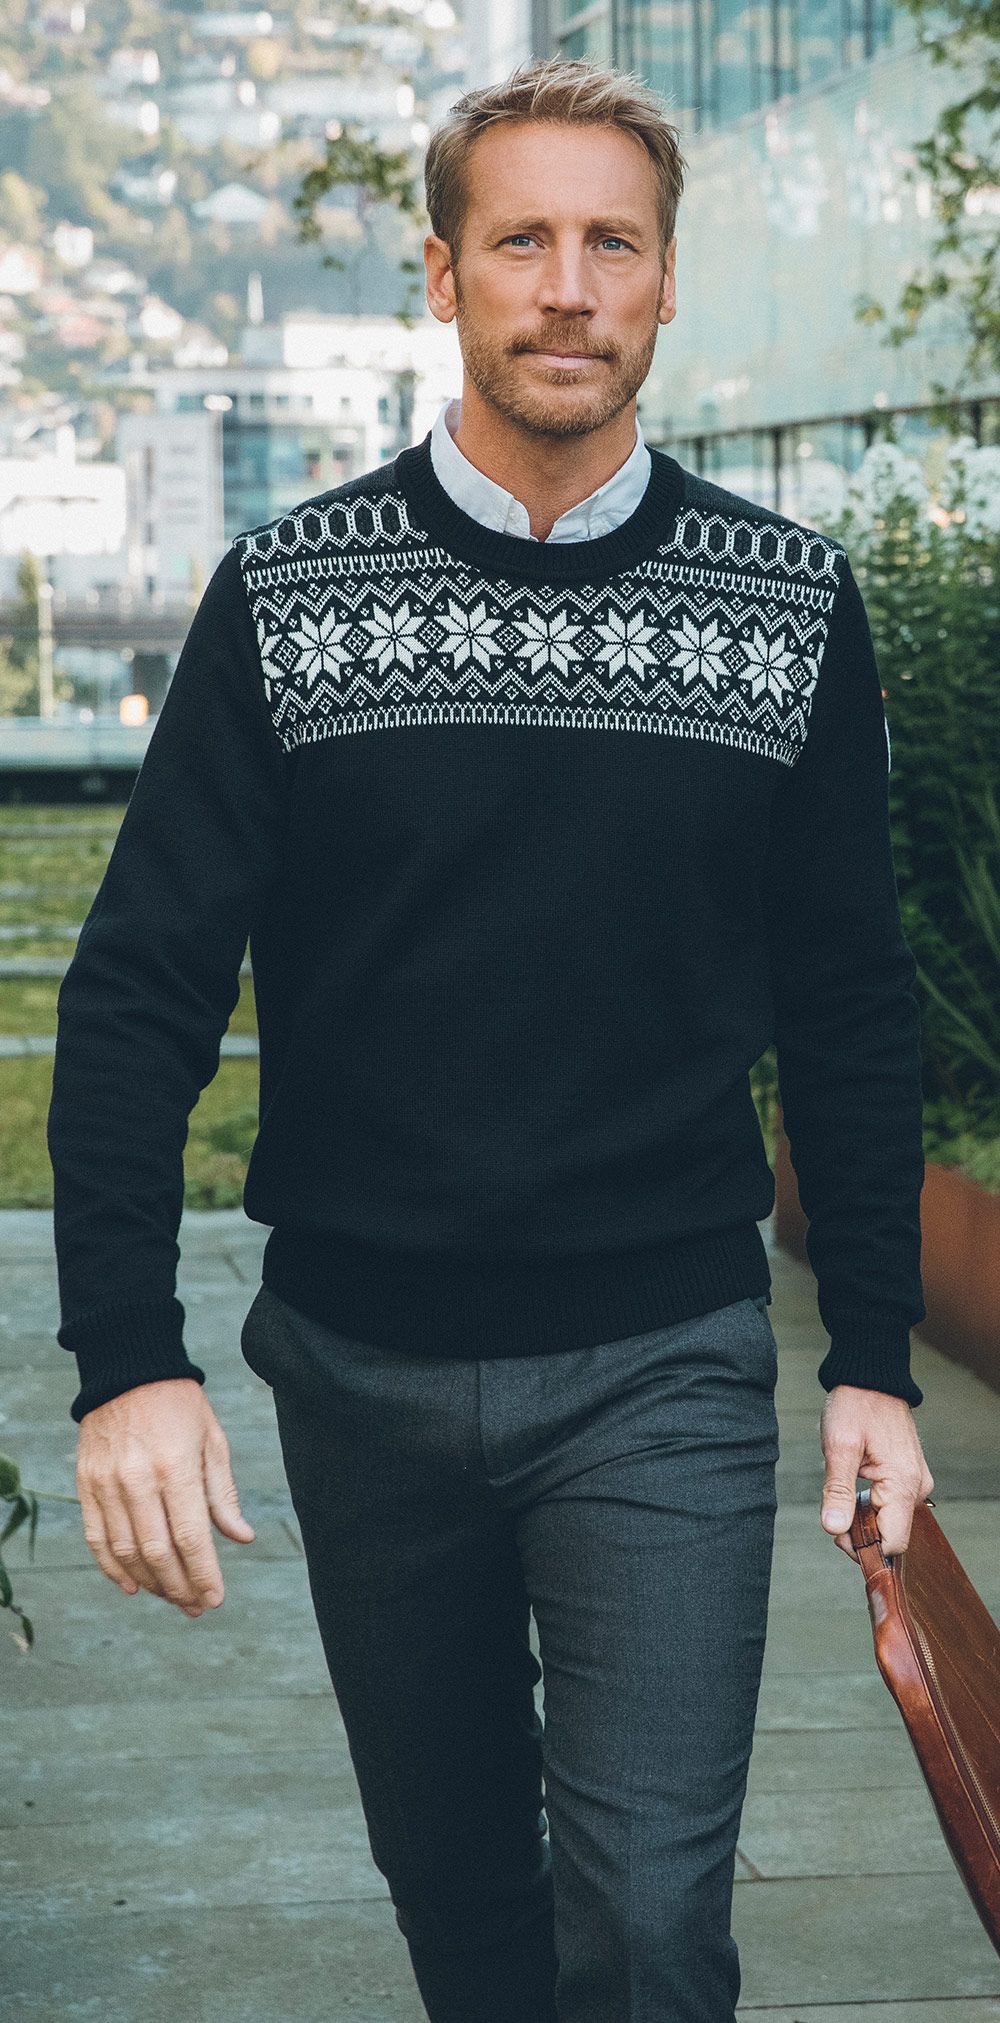 Sweater garmisch - Discount 0%